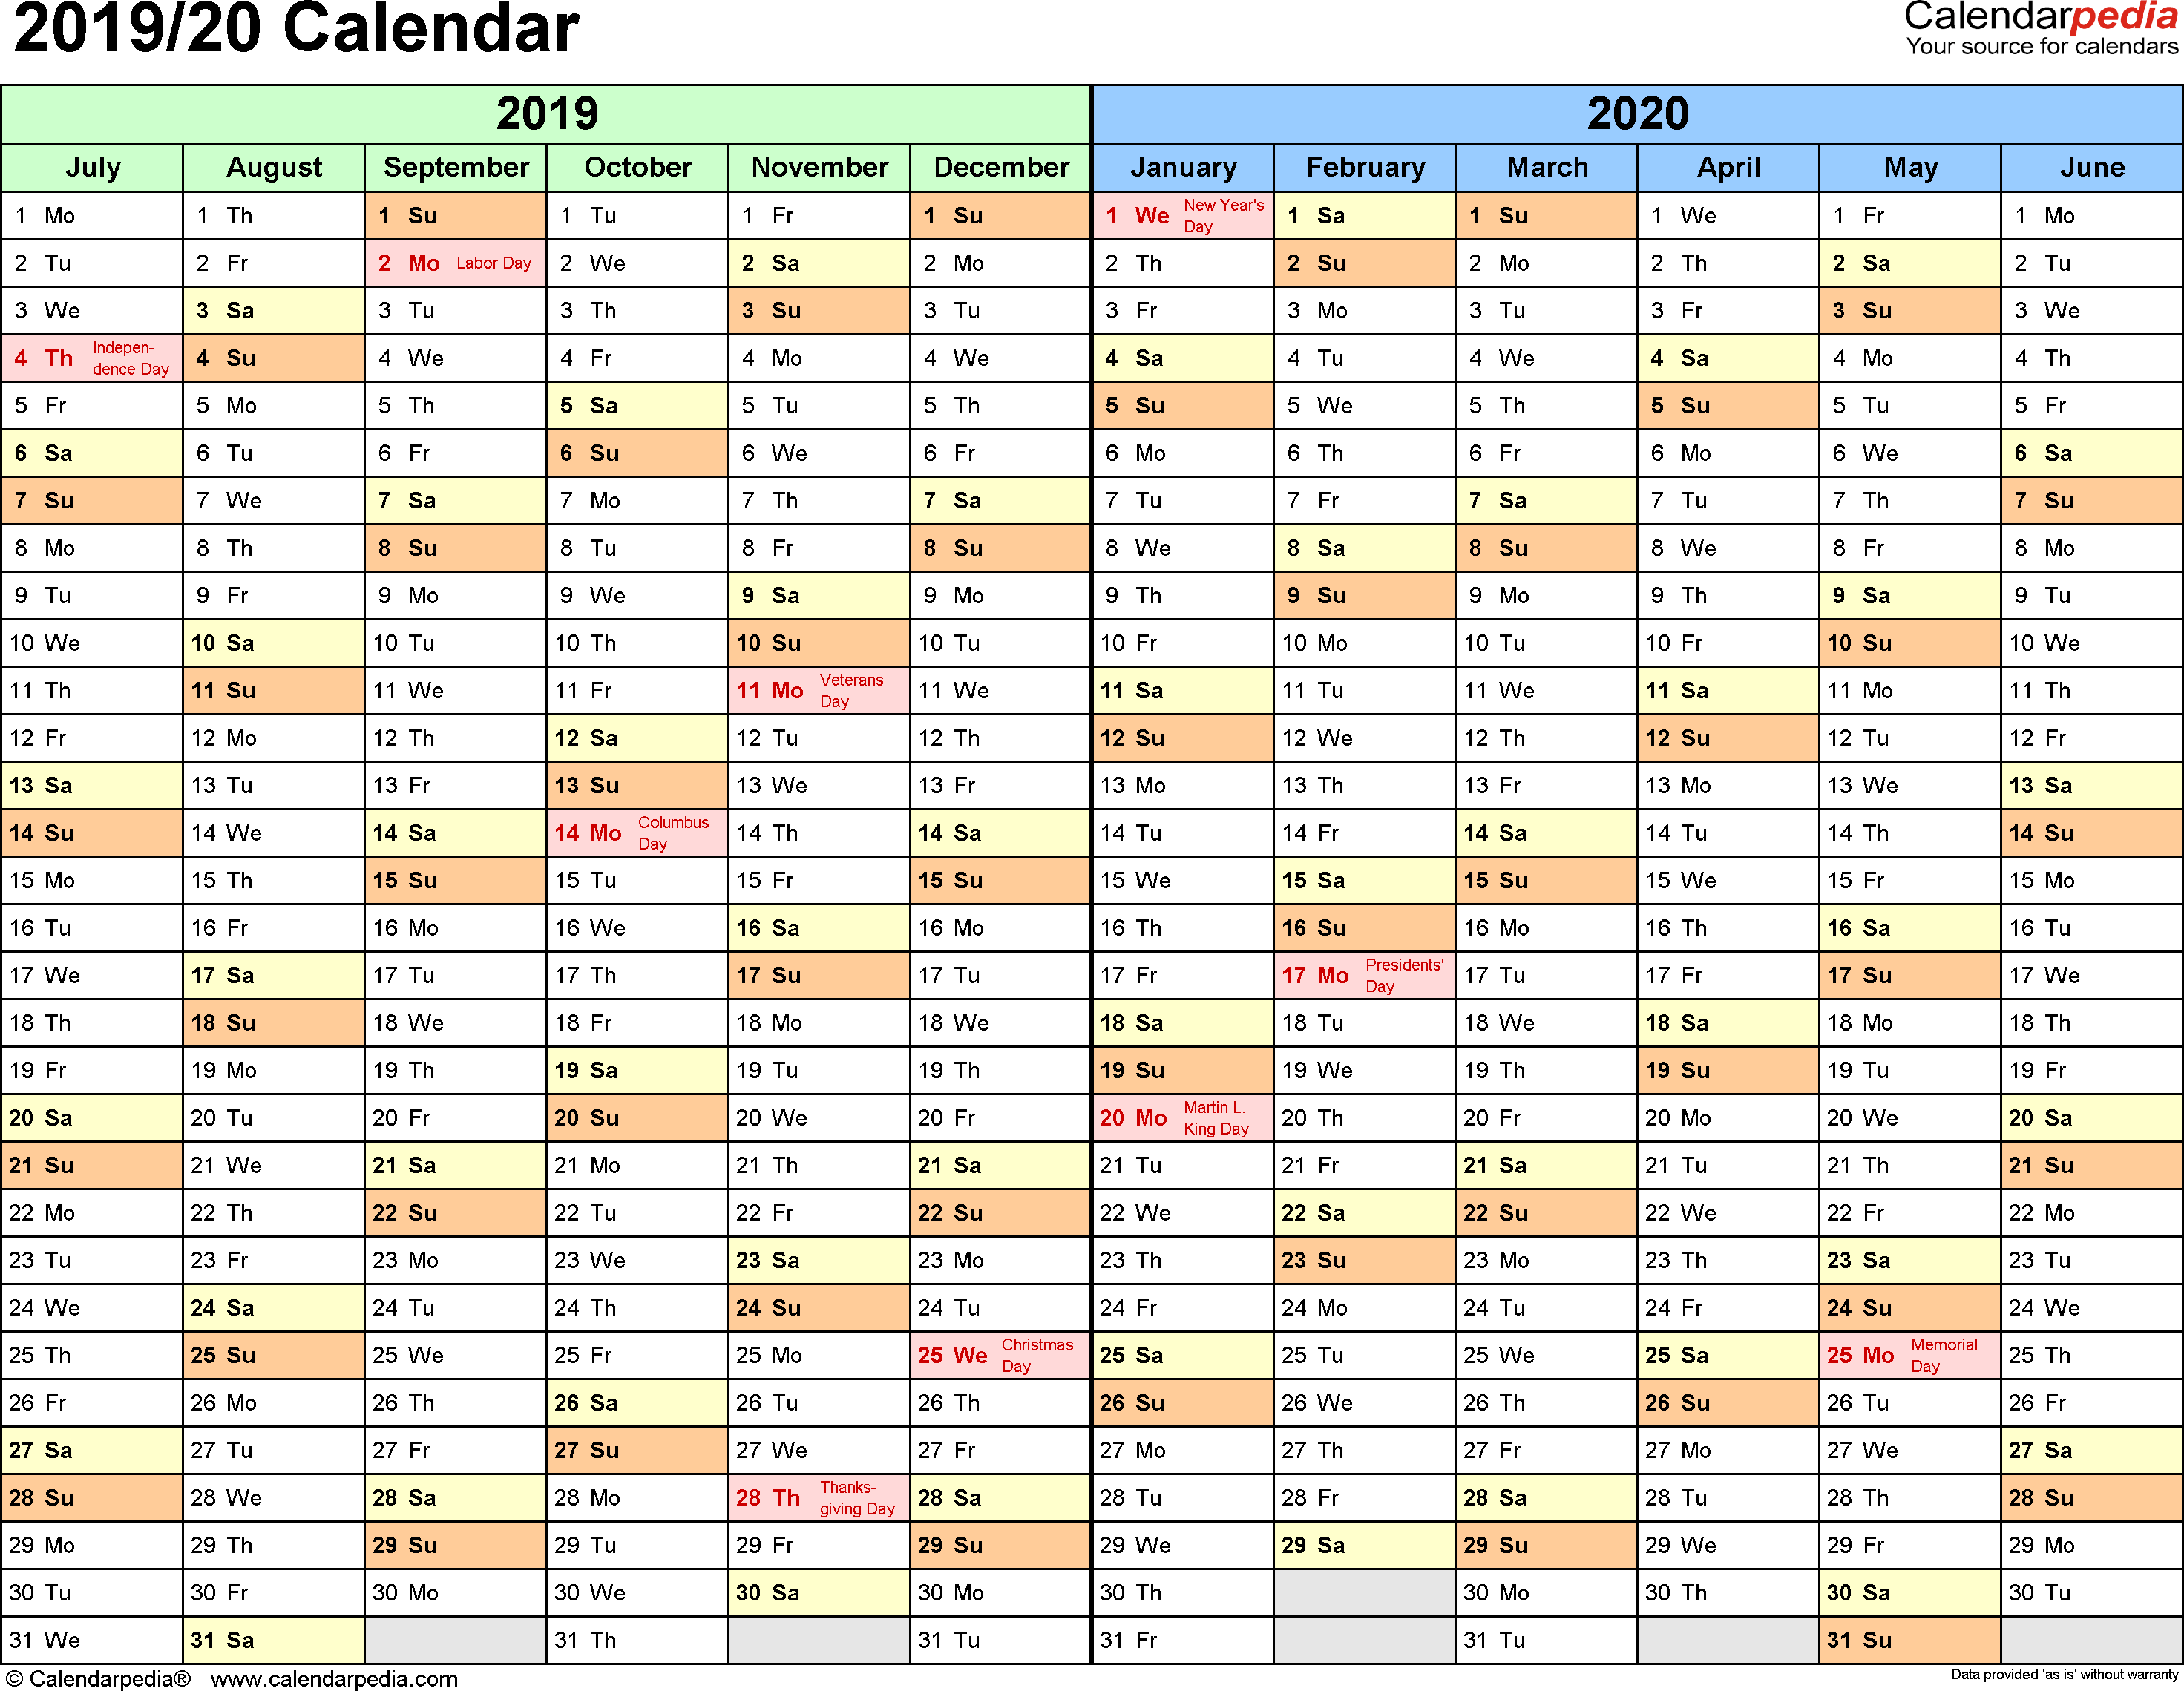 2019 Full Year Calendar Template Excel With Split 20 July To June Templates